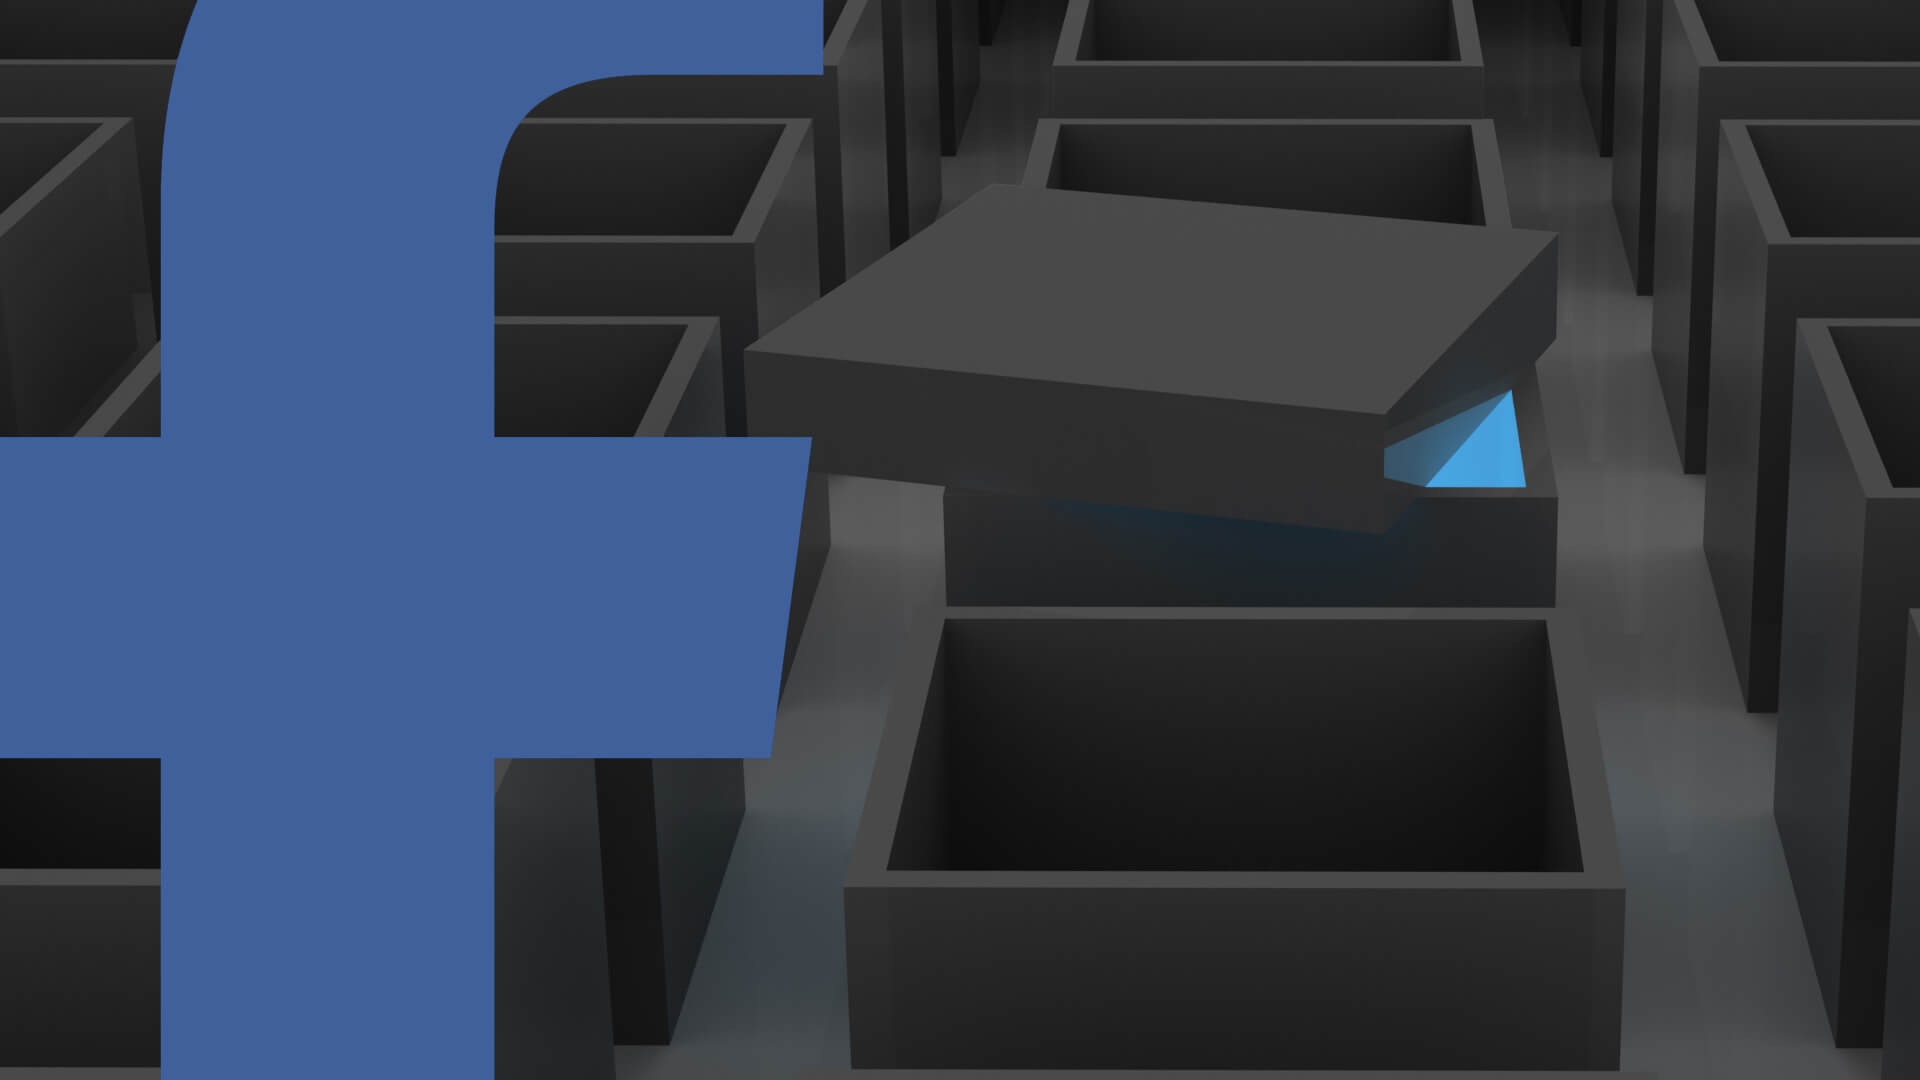 Facebook's 'Clear History' feature delayed until spring 2019